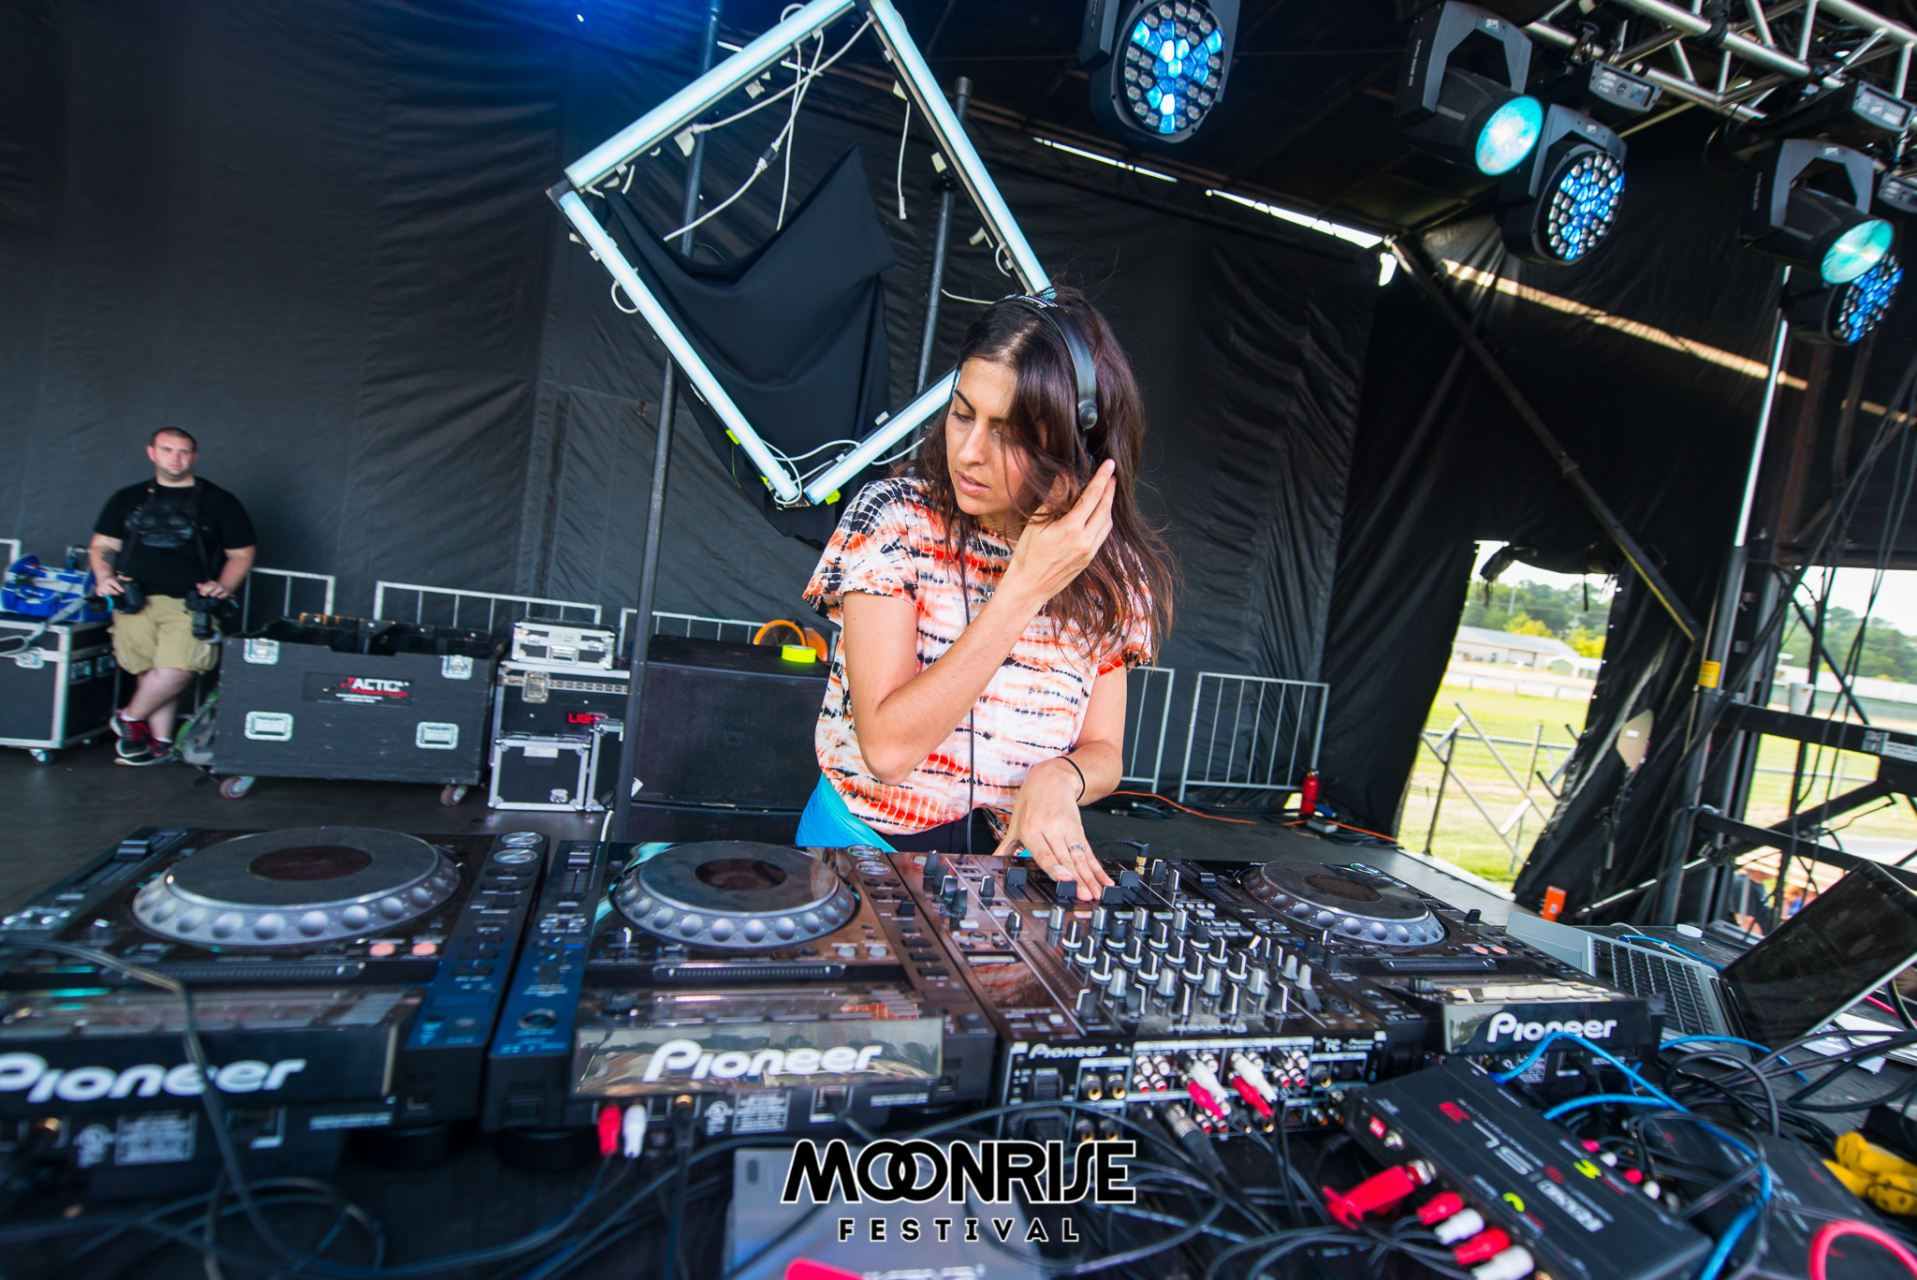 Moonrise_day2-5